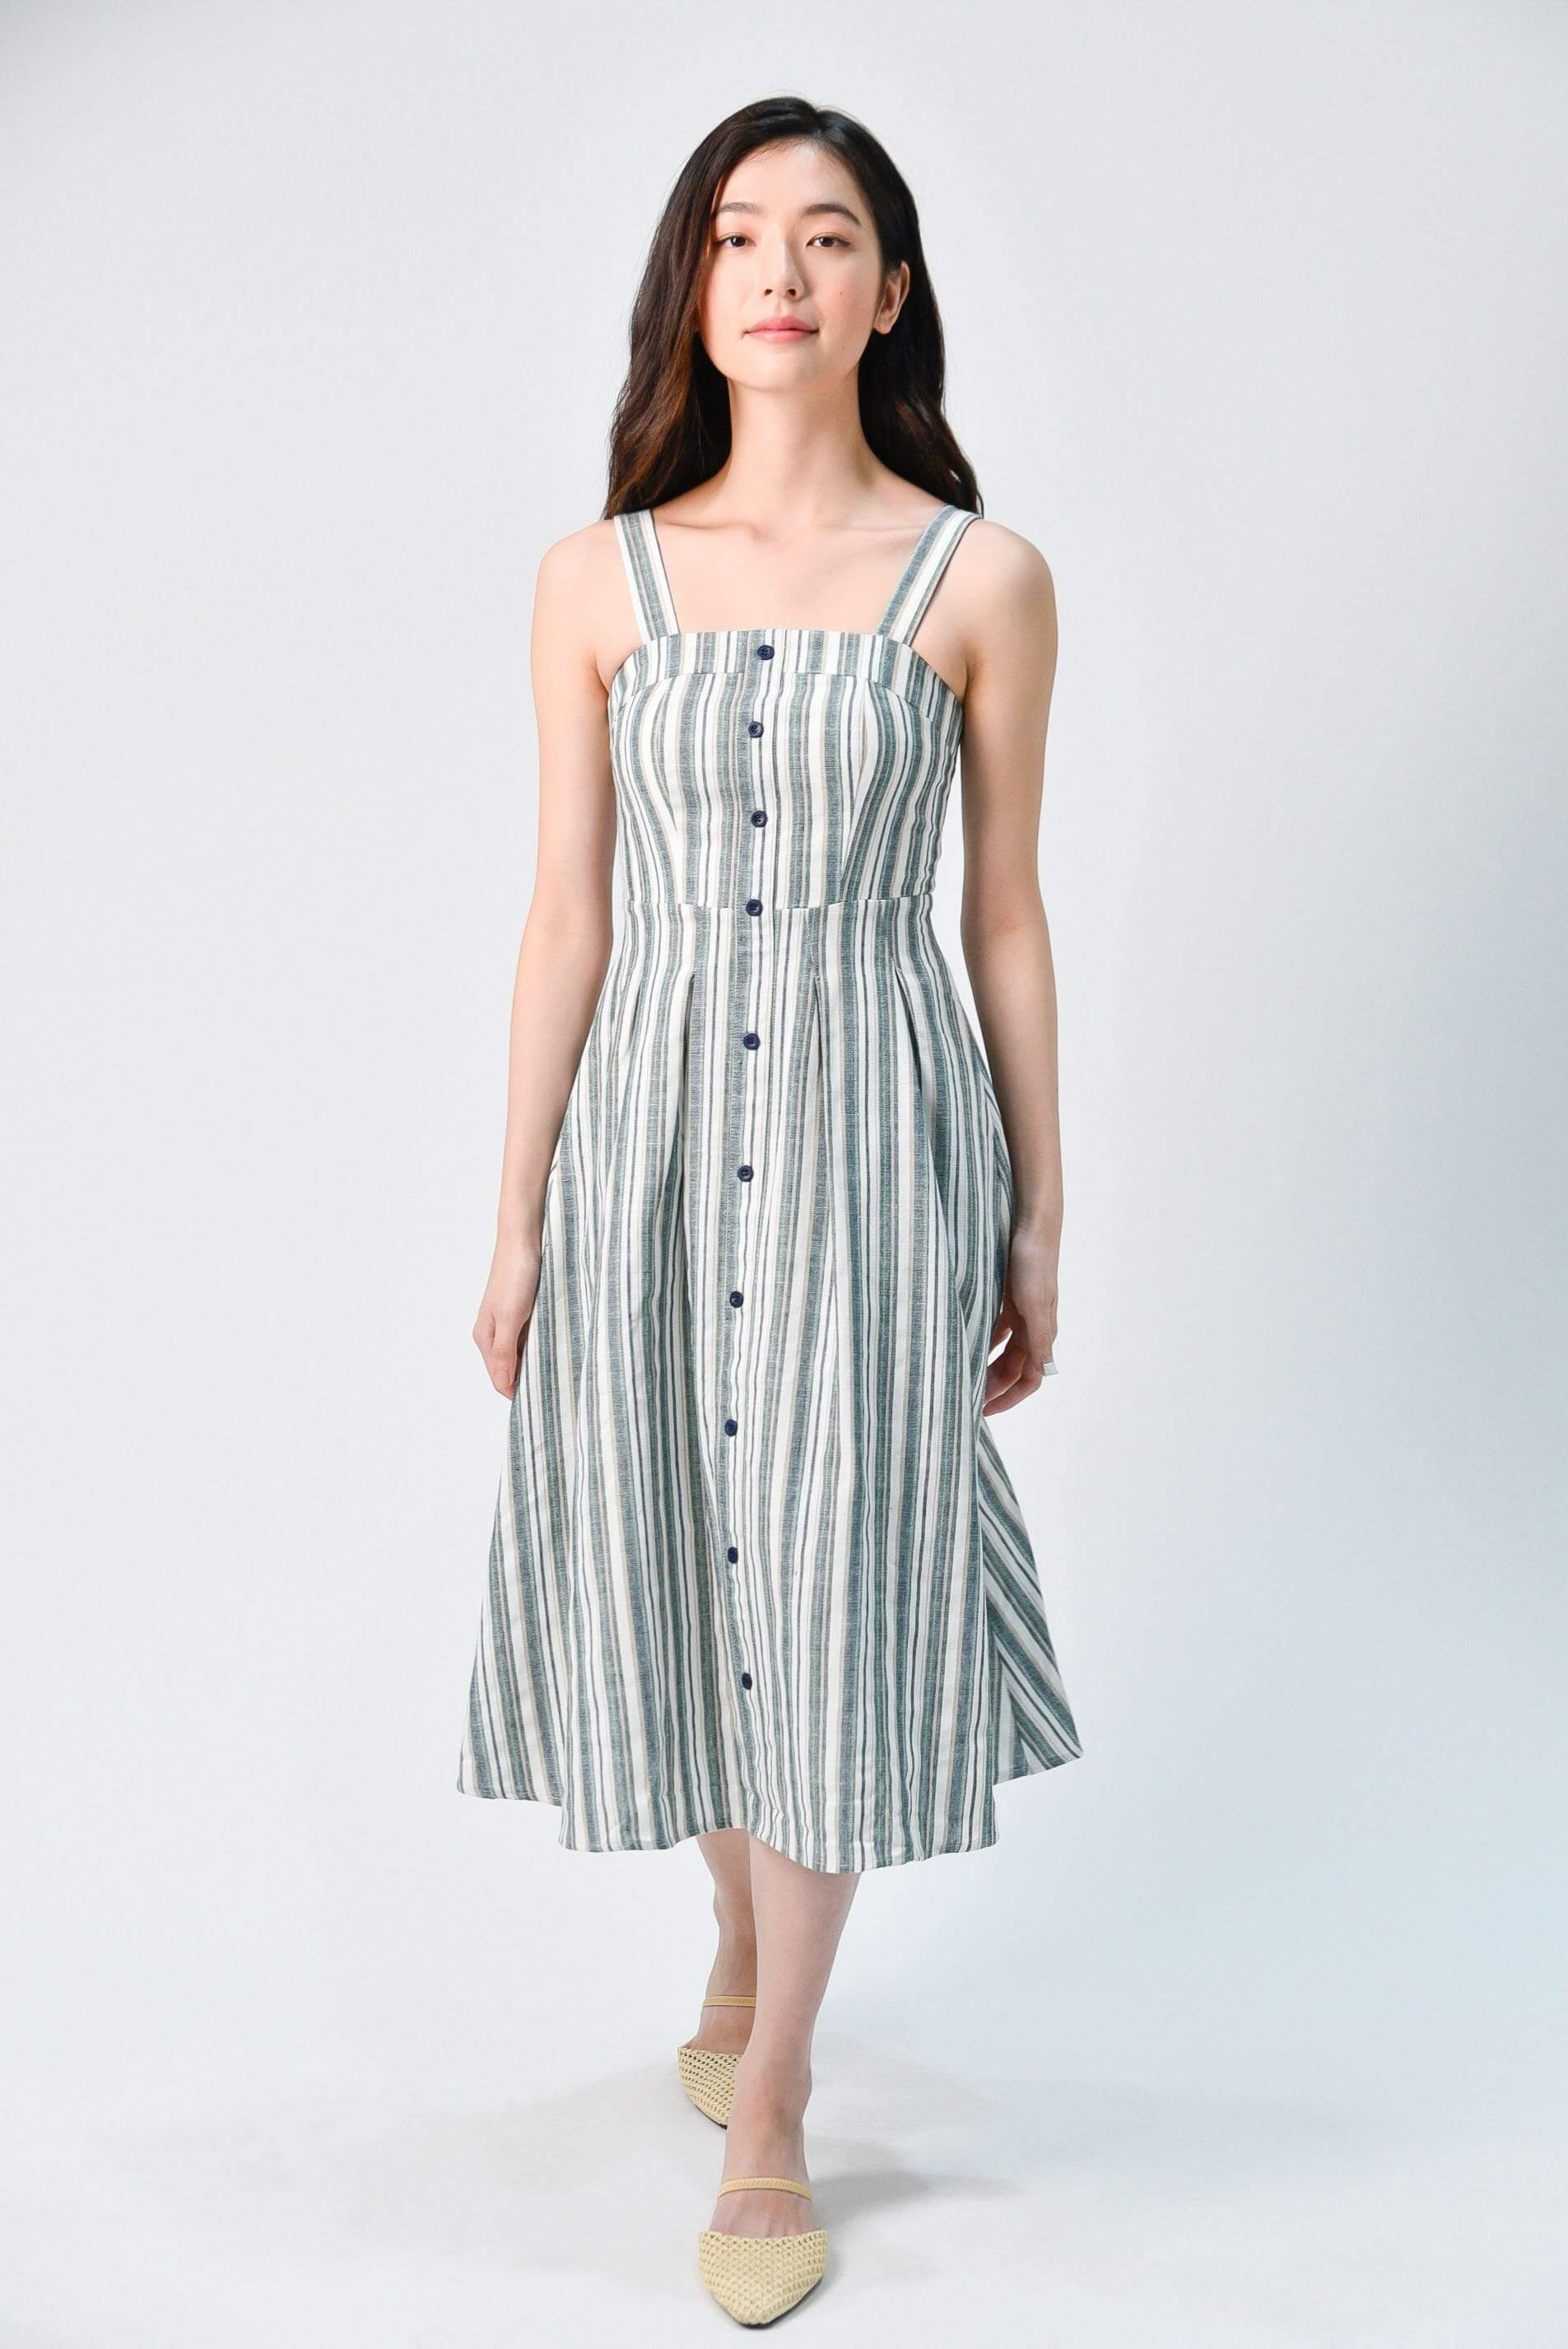 YEONA NAVY STRIPE DRESS